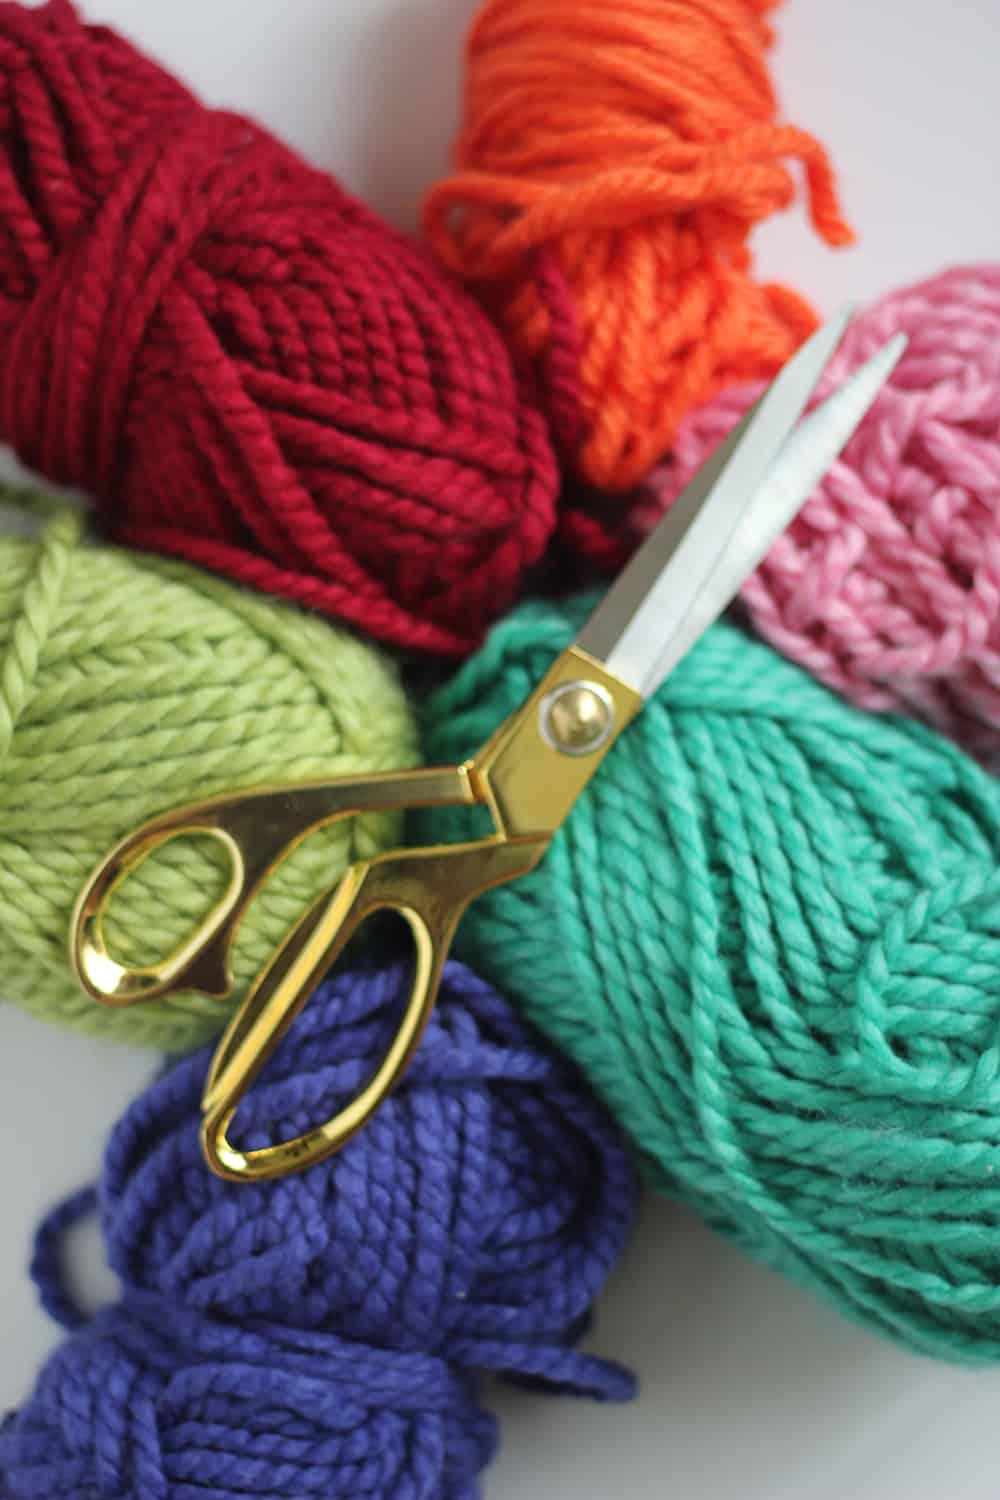 Fingerknitting only takes some bulky yarn and your fingers!